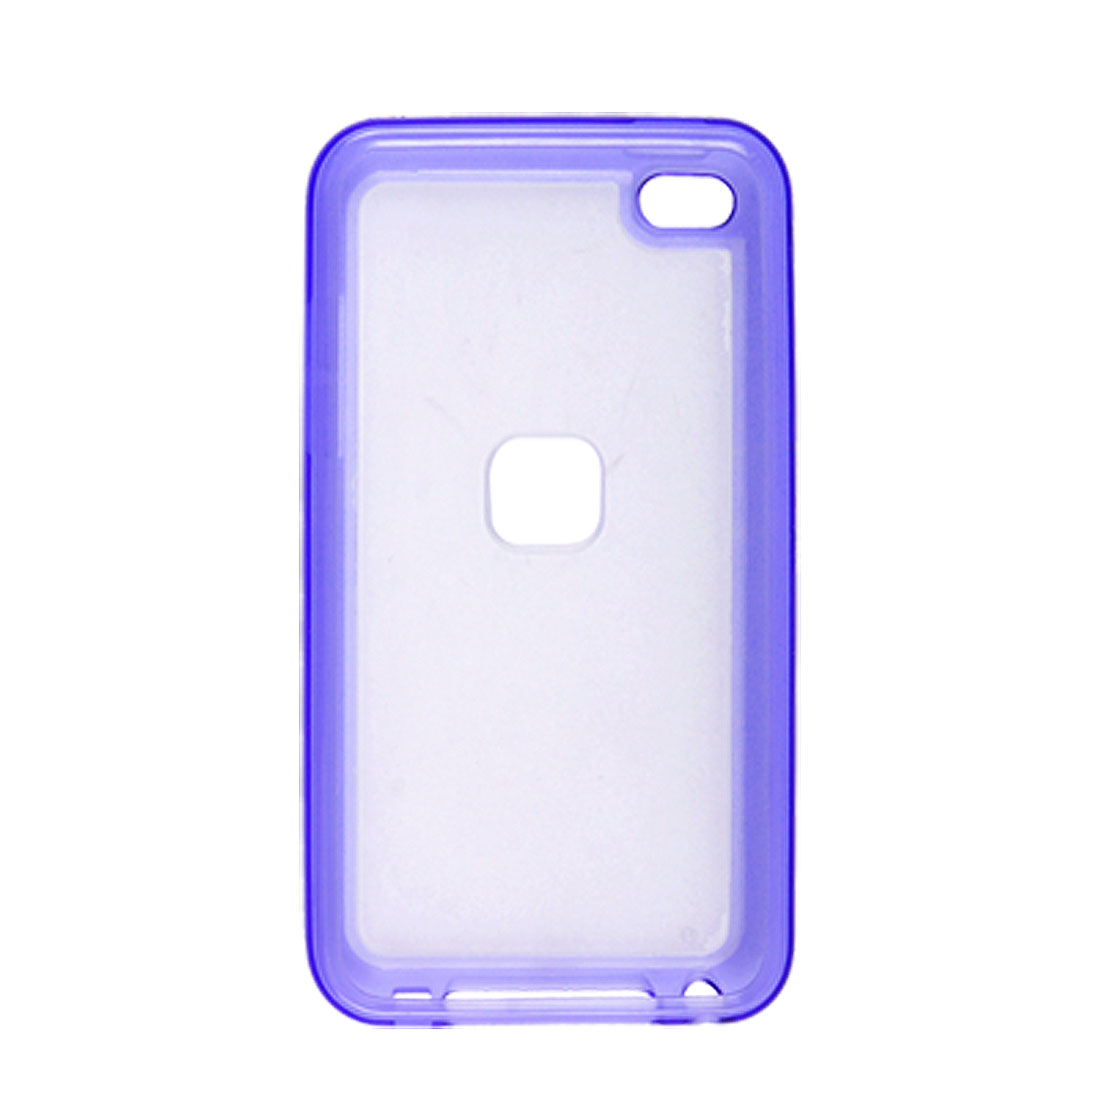 Anti Glare Plastic Purle Back Shell for iPod Touch 4G